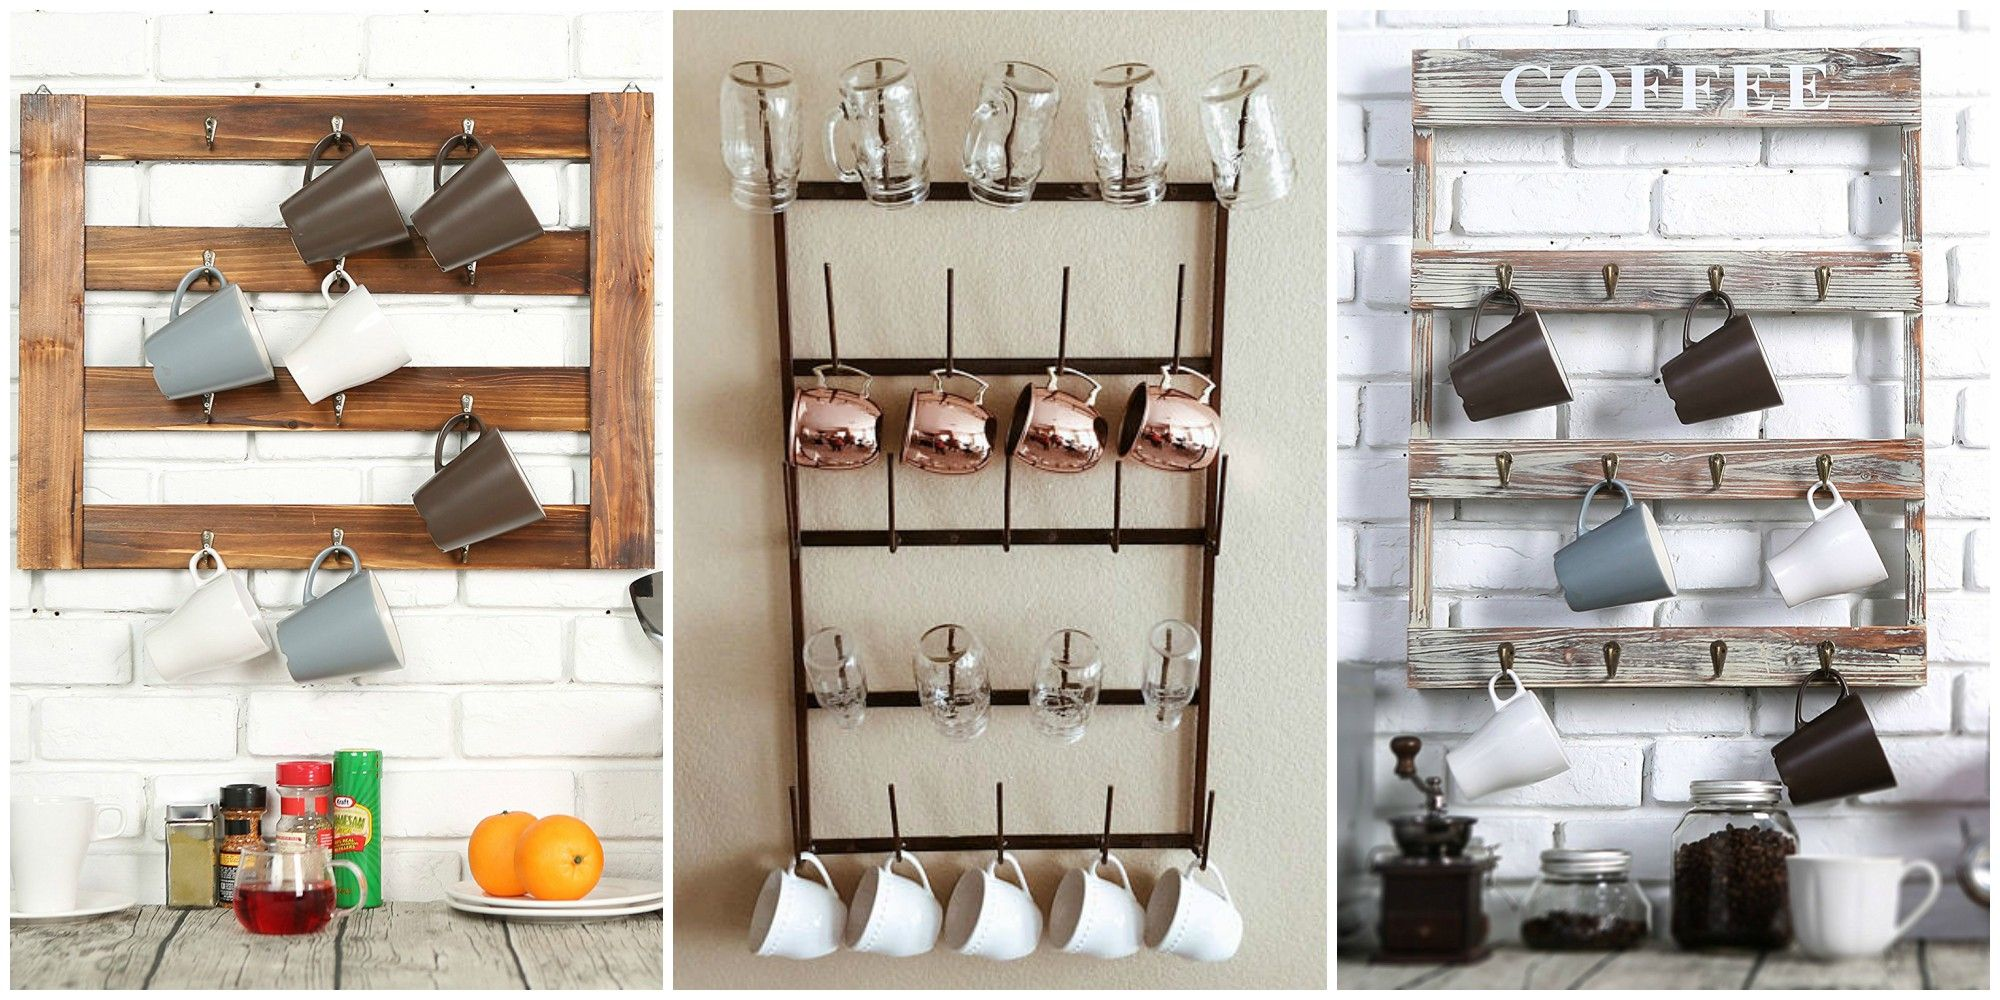 The Best Mug Racks Where To Buy Coffee Mug Racks